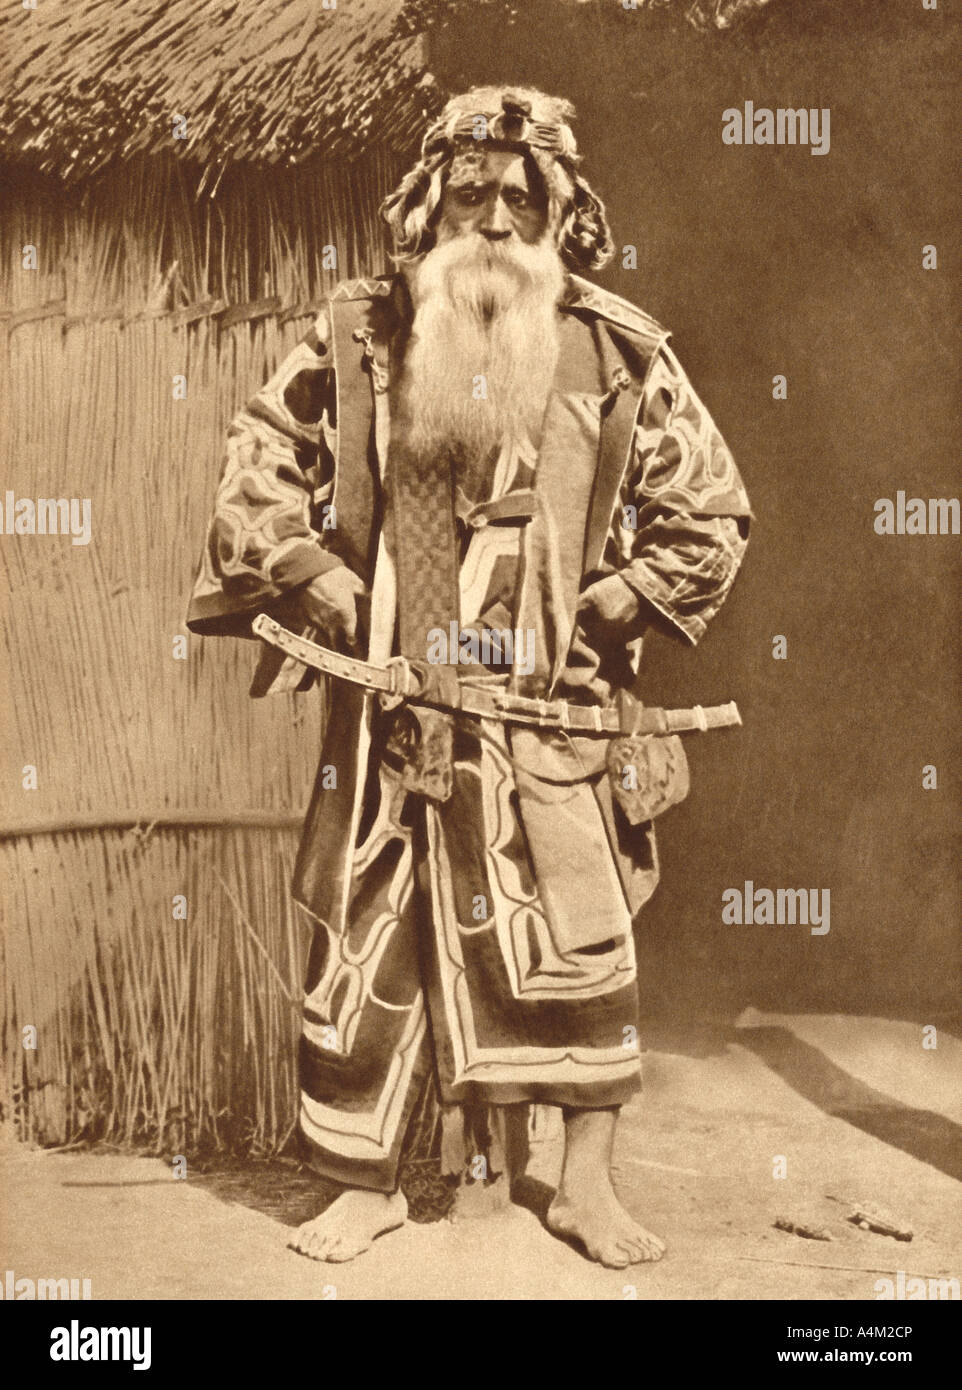 Historical Photograph of Village Chief of the Ainus from the Northern Islands of Japan - Stock Image